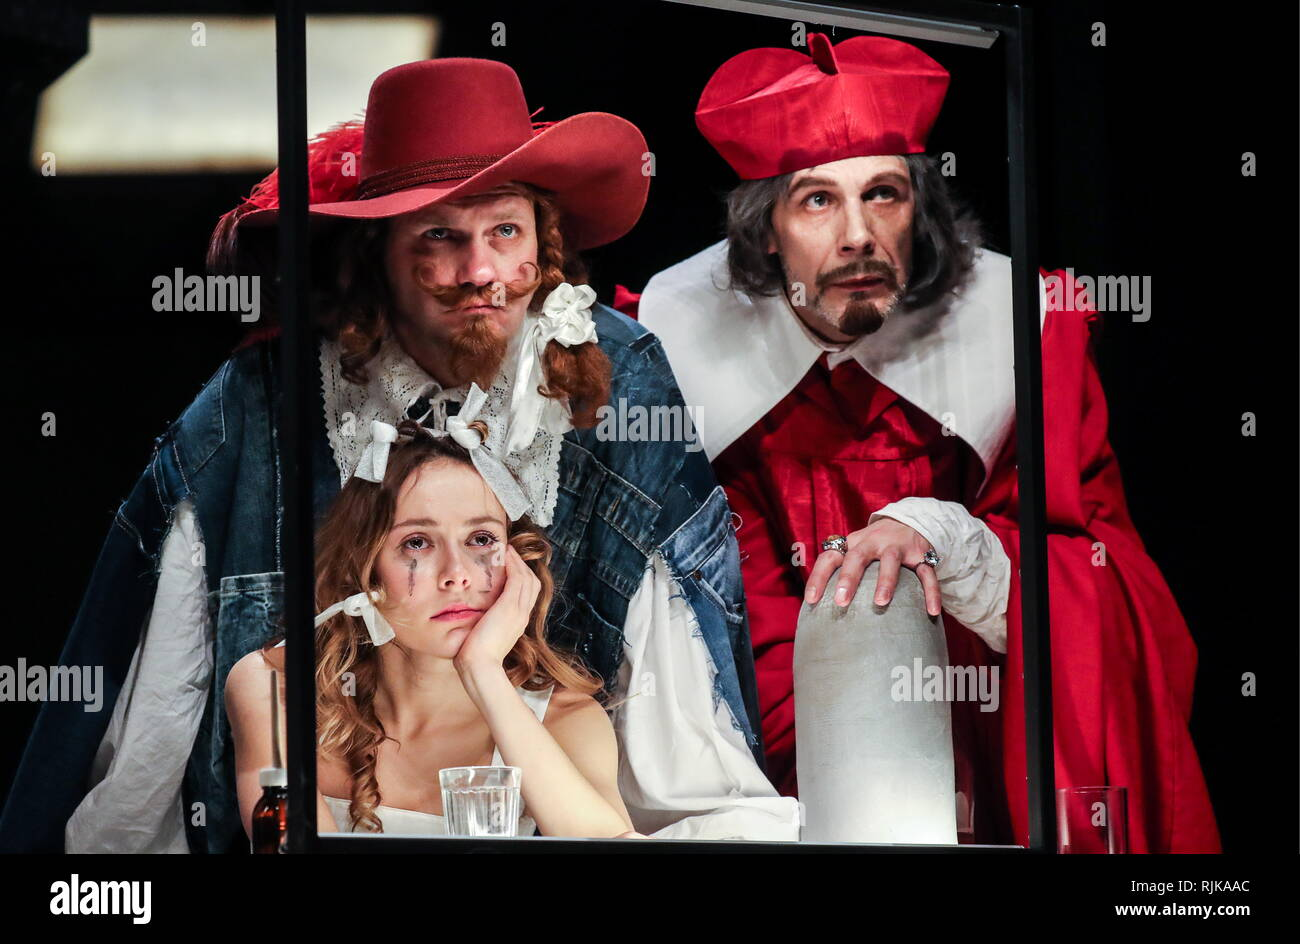 Moscow, Russia. 06th Feb, 2019. MOSCOW, RUSSIA - FEBRUARY 6, 2019: Actors Polina Pakhomova (front) as Constance, Oleg Feoktistov as Porthos and Oleg Plaksin (L-R background) as Cardinal Richelieu in a scene from the Dyuma production based on a play by Ivan Okhlobystin and staged by Mikhail Yefremov at Sovremennik Theatre. Vyacheslav Prokofyev/TASS Credit: ITAR-TASS News Agency/Alamy Live News - Stock Image